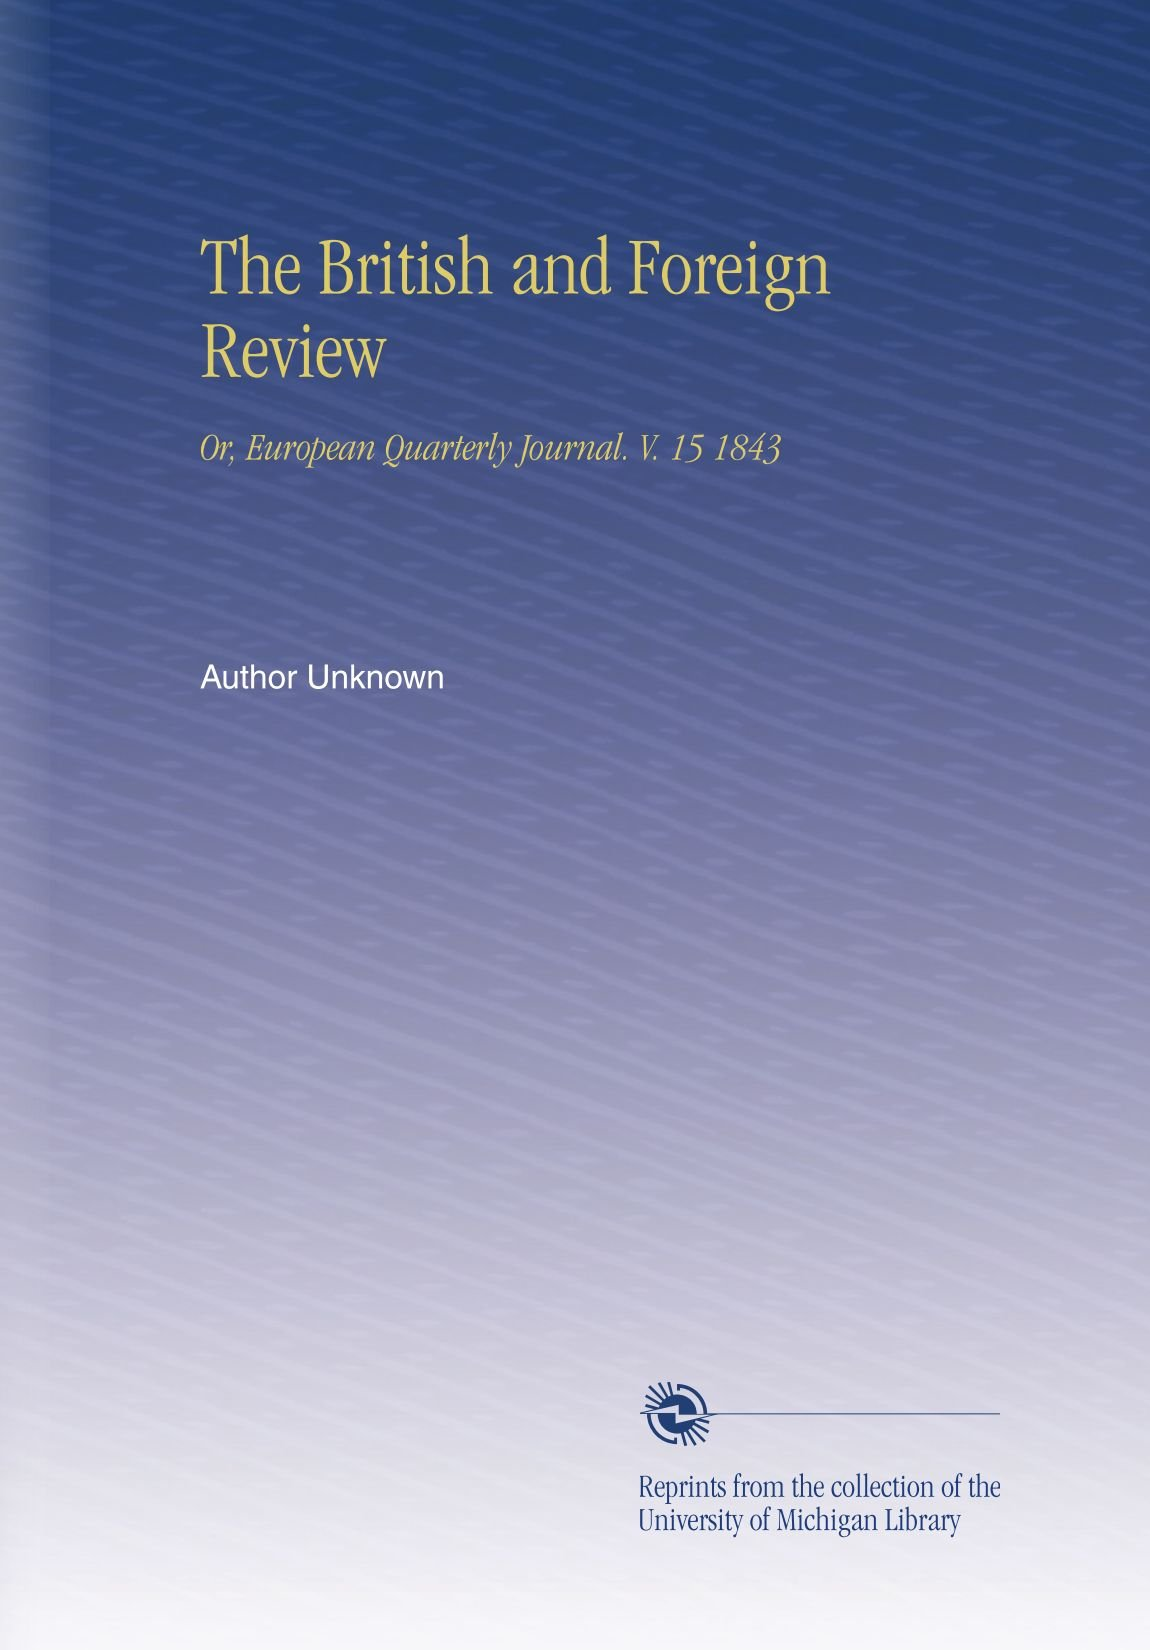 The British and Foreign Review: Or, European Quarterly Journal. V. 15 1843 pdf